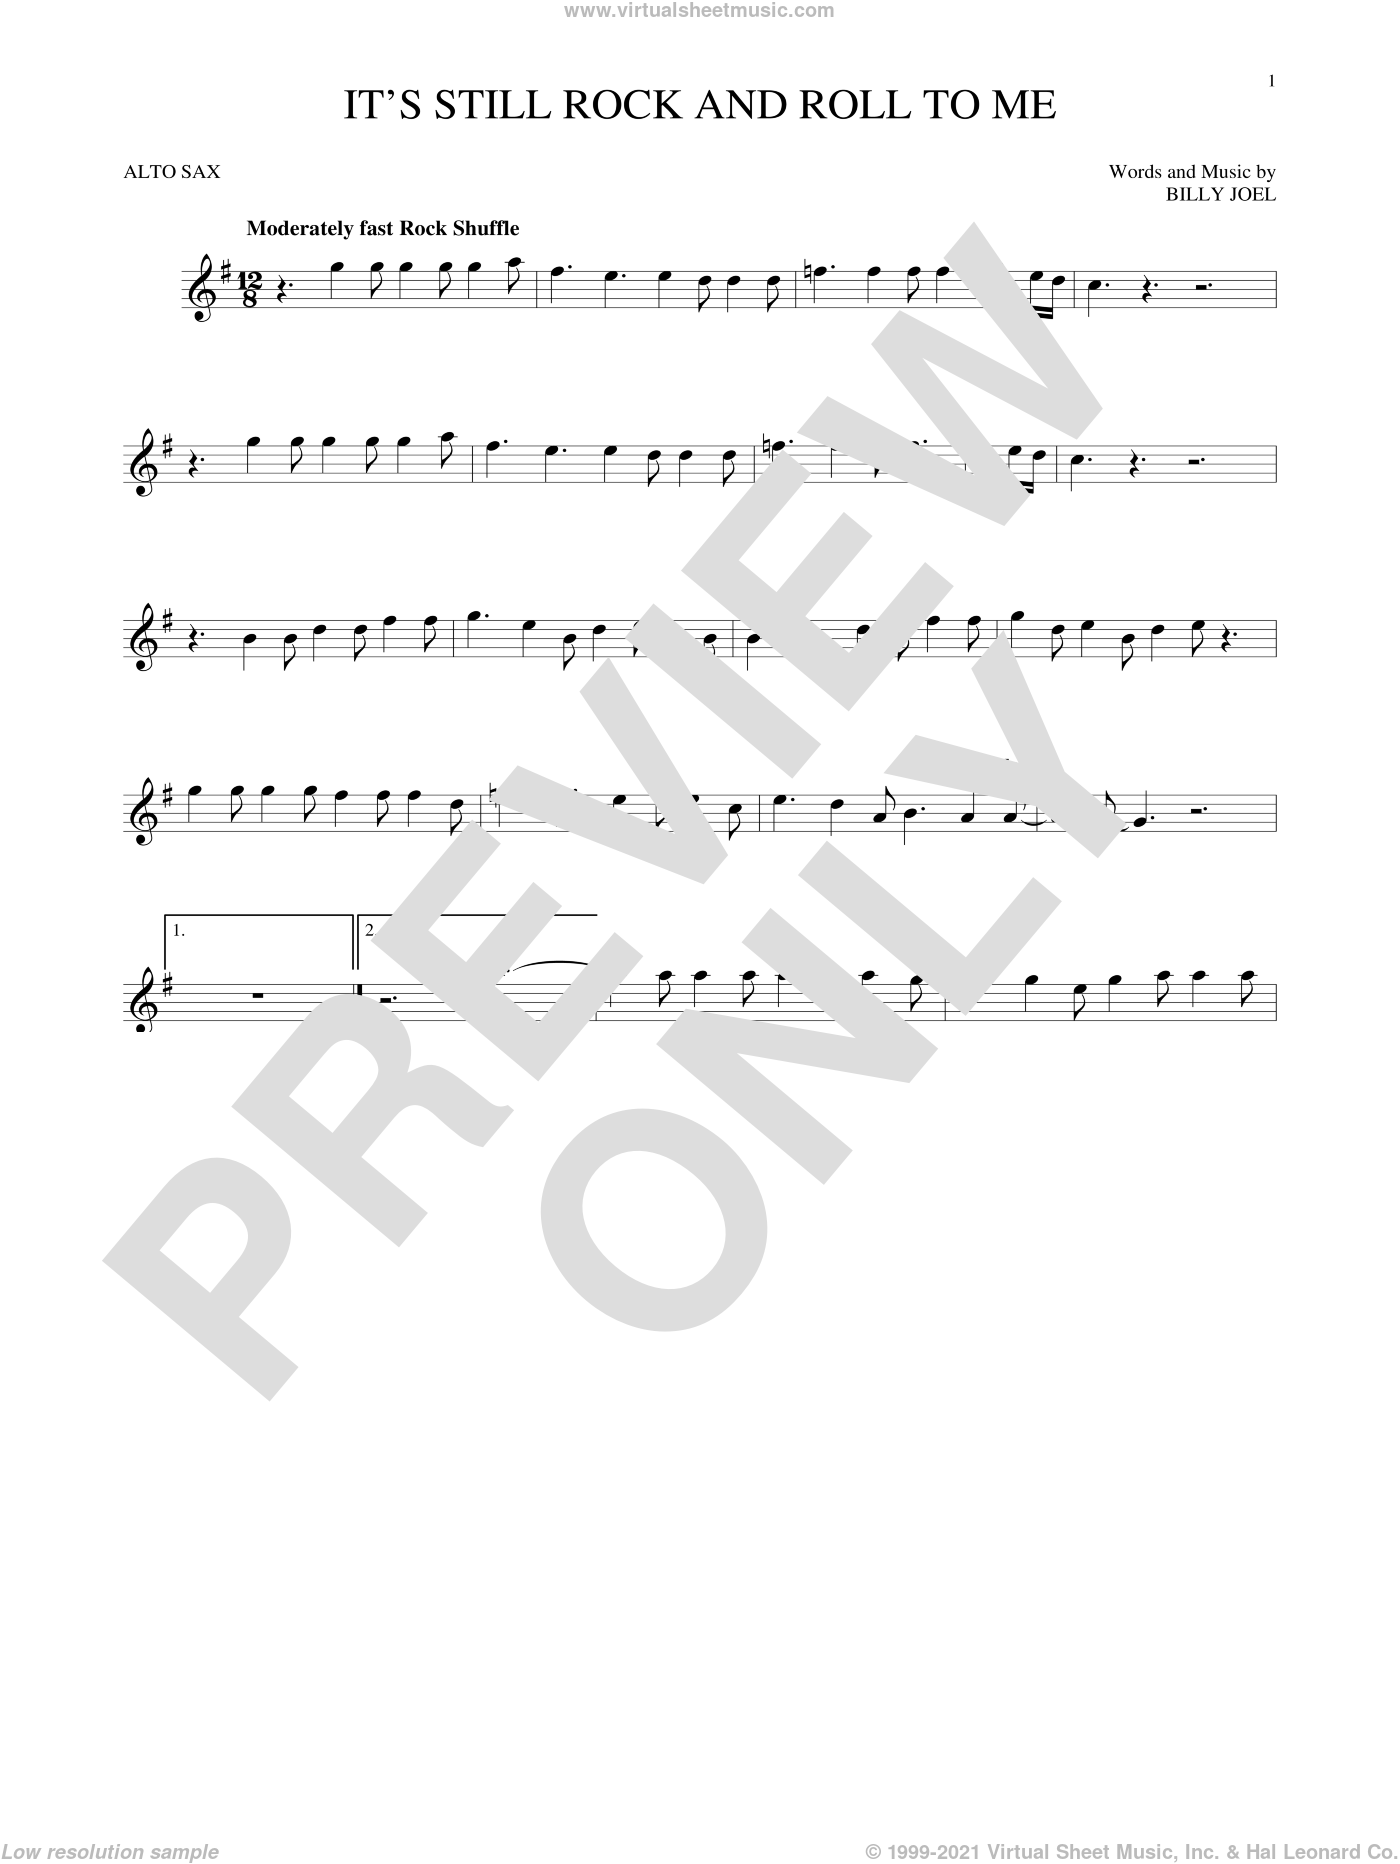 It's Still Rock And Roll To Me sheet music for alto saxophone solo by Billy Joel. Score Image Preview.